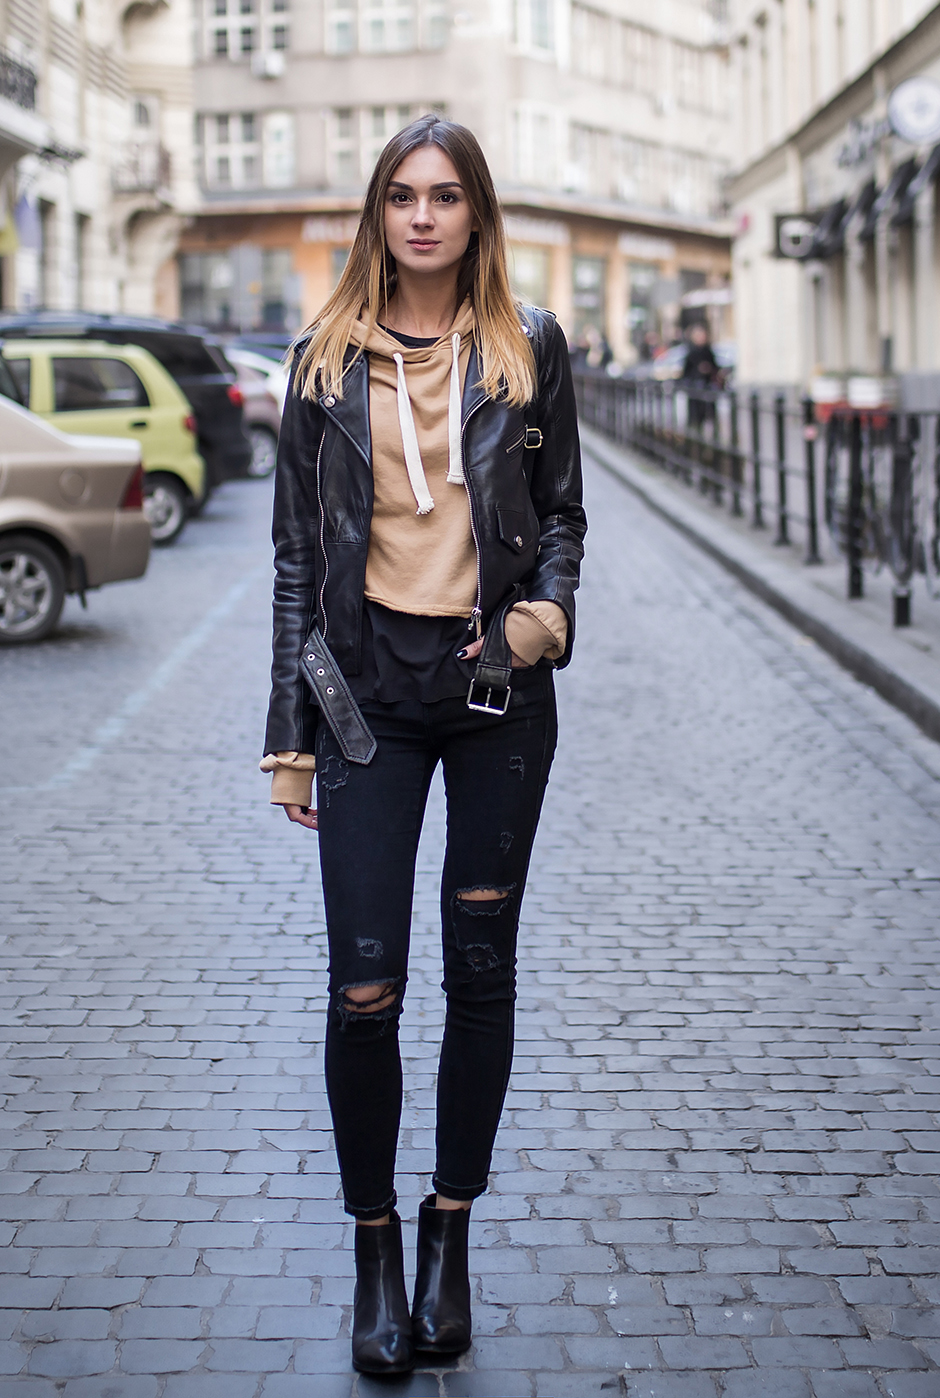 fashion-look-leather-jacket-hoodie-ripped-jeans-street-style